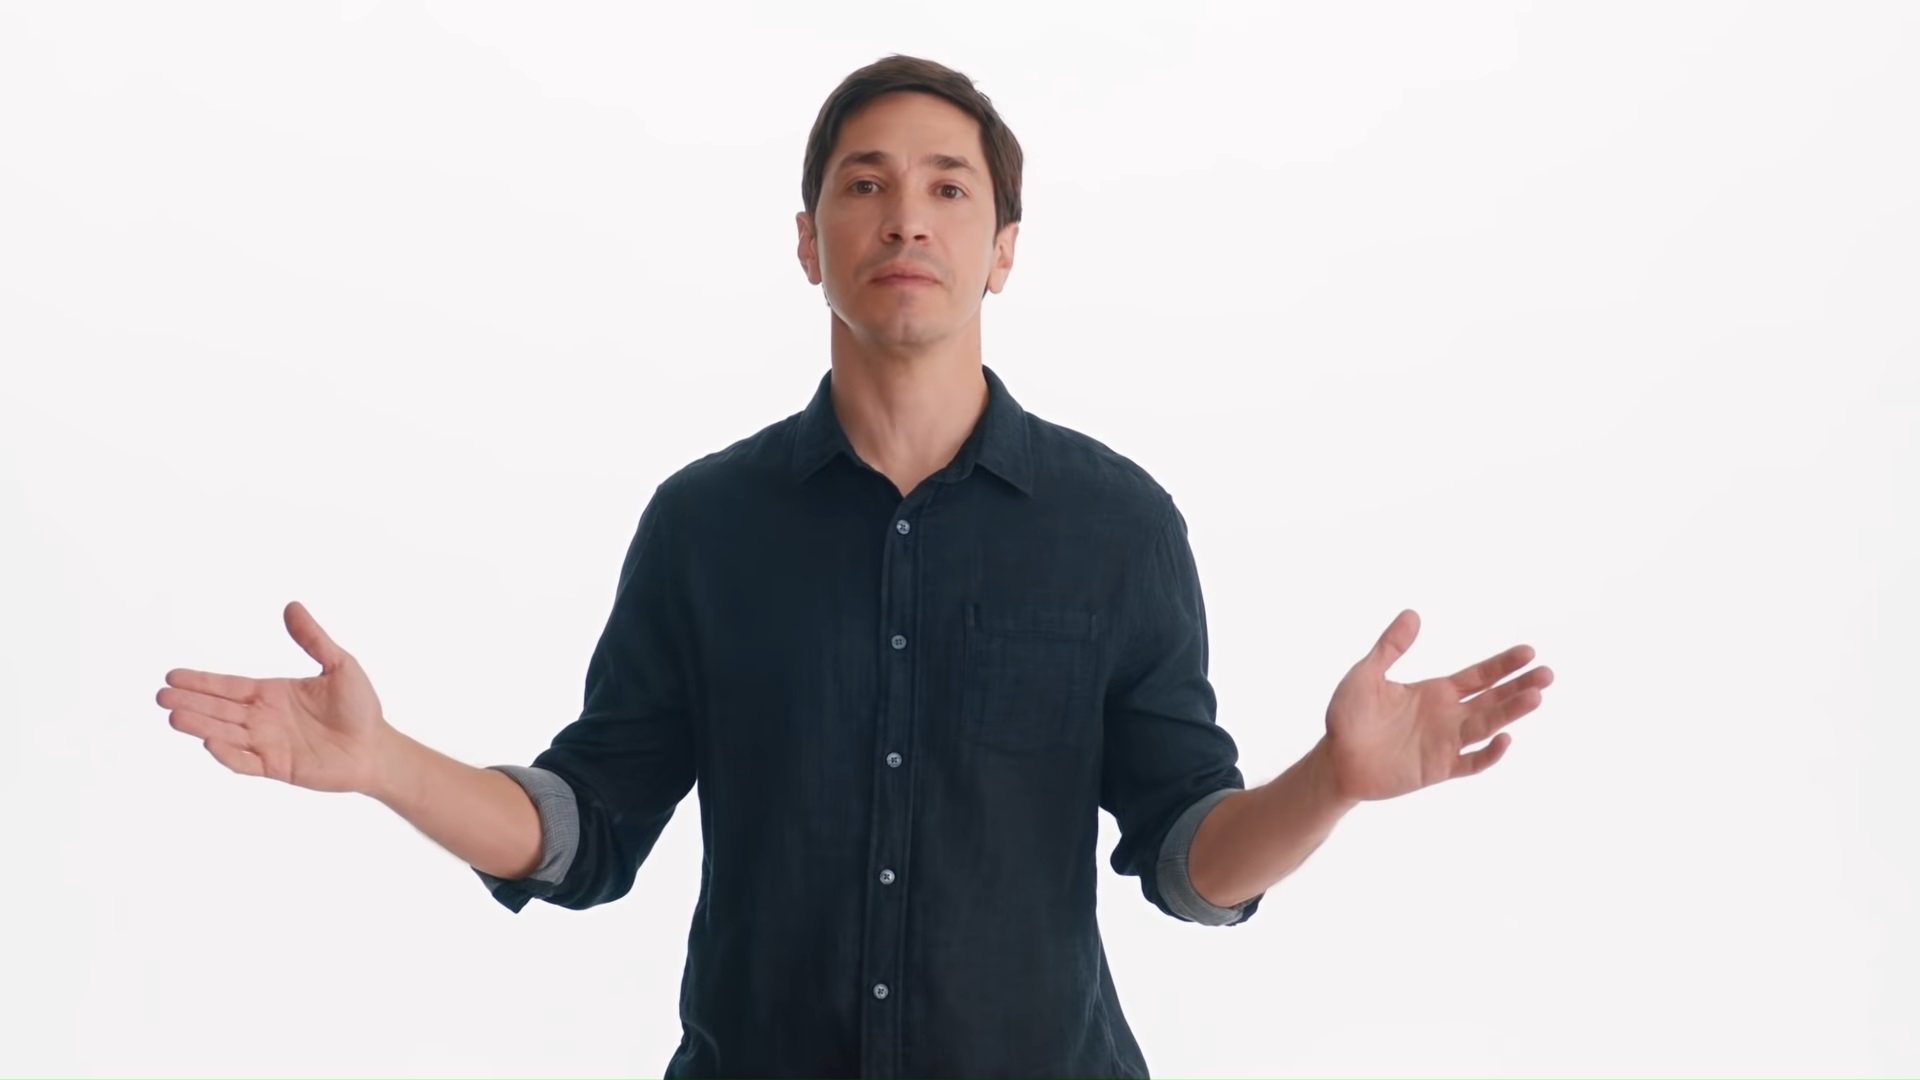 <p>Intel hired the'I'm a Mac' guy to promote PCs and make fun of Apple thumbnail